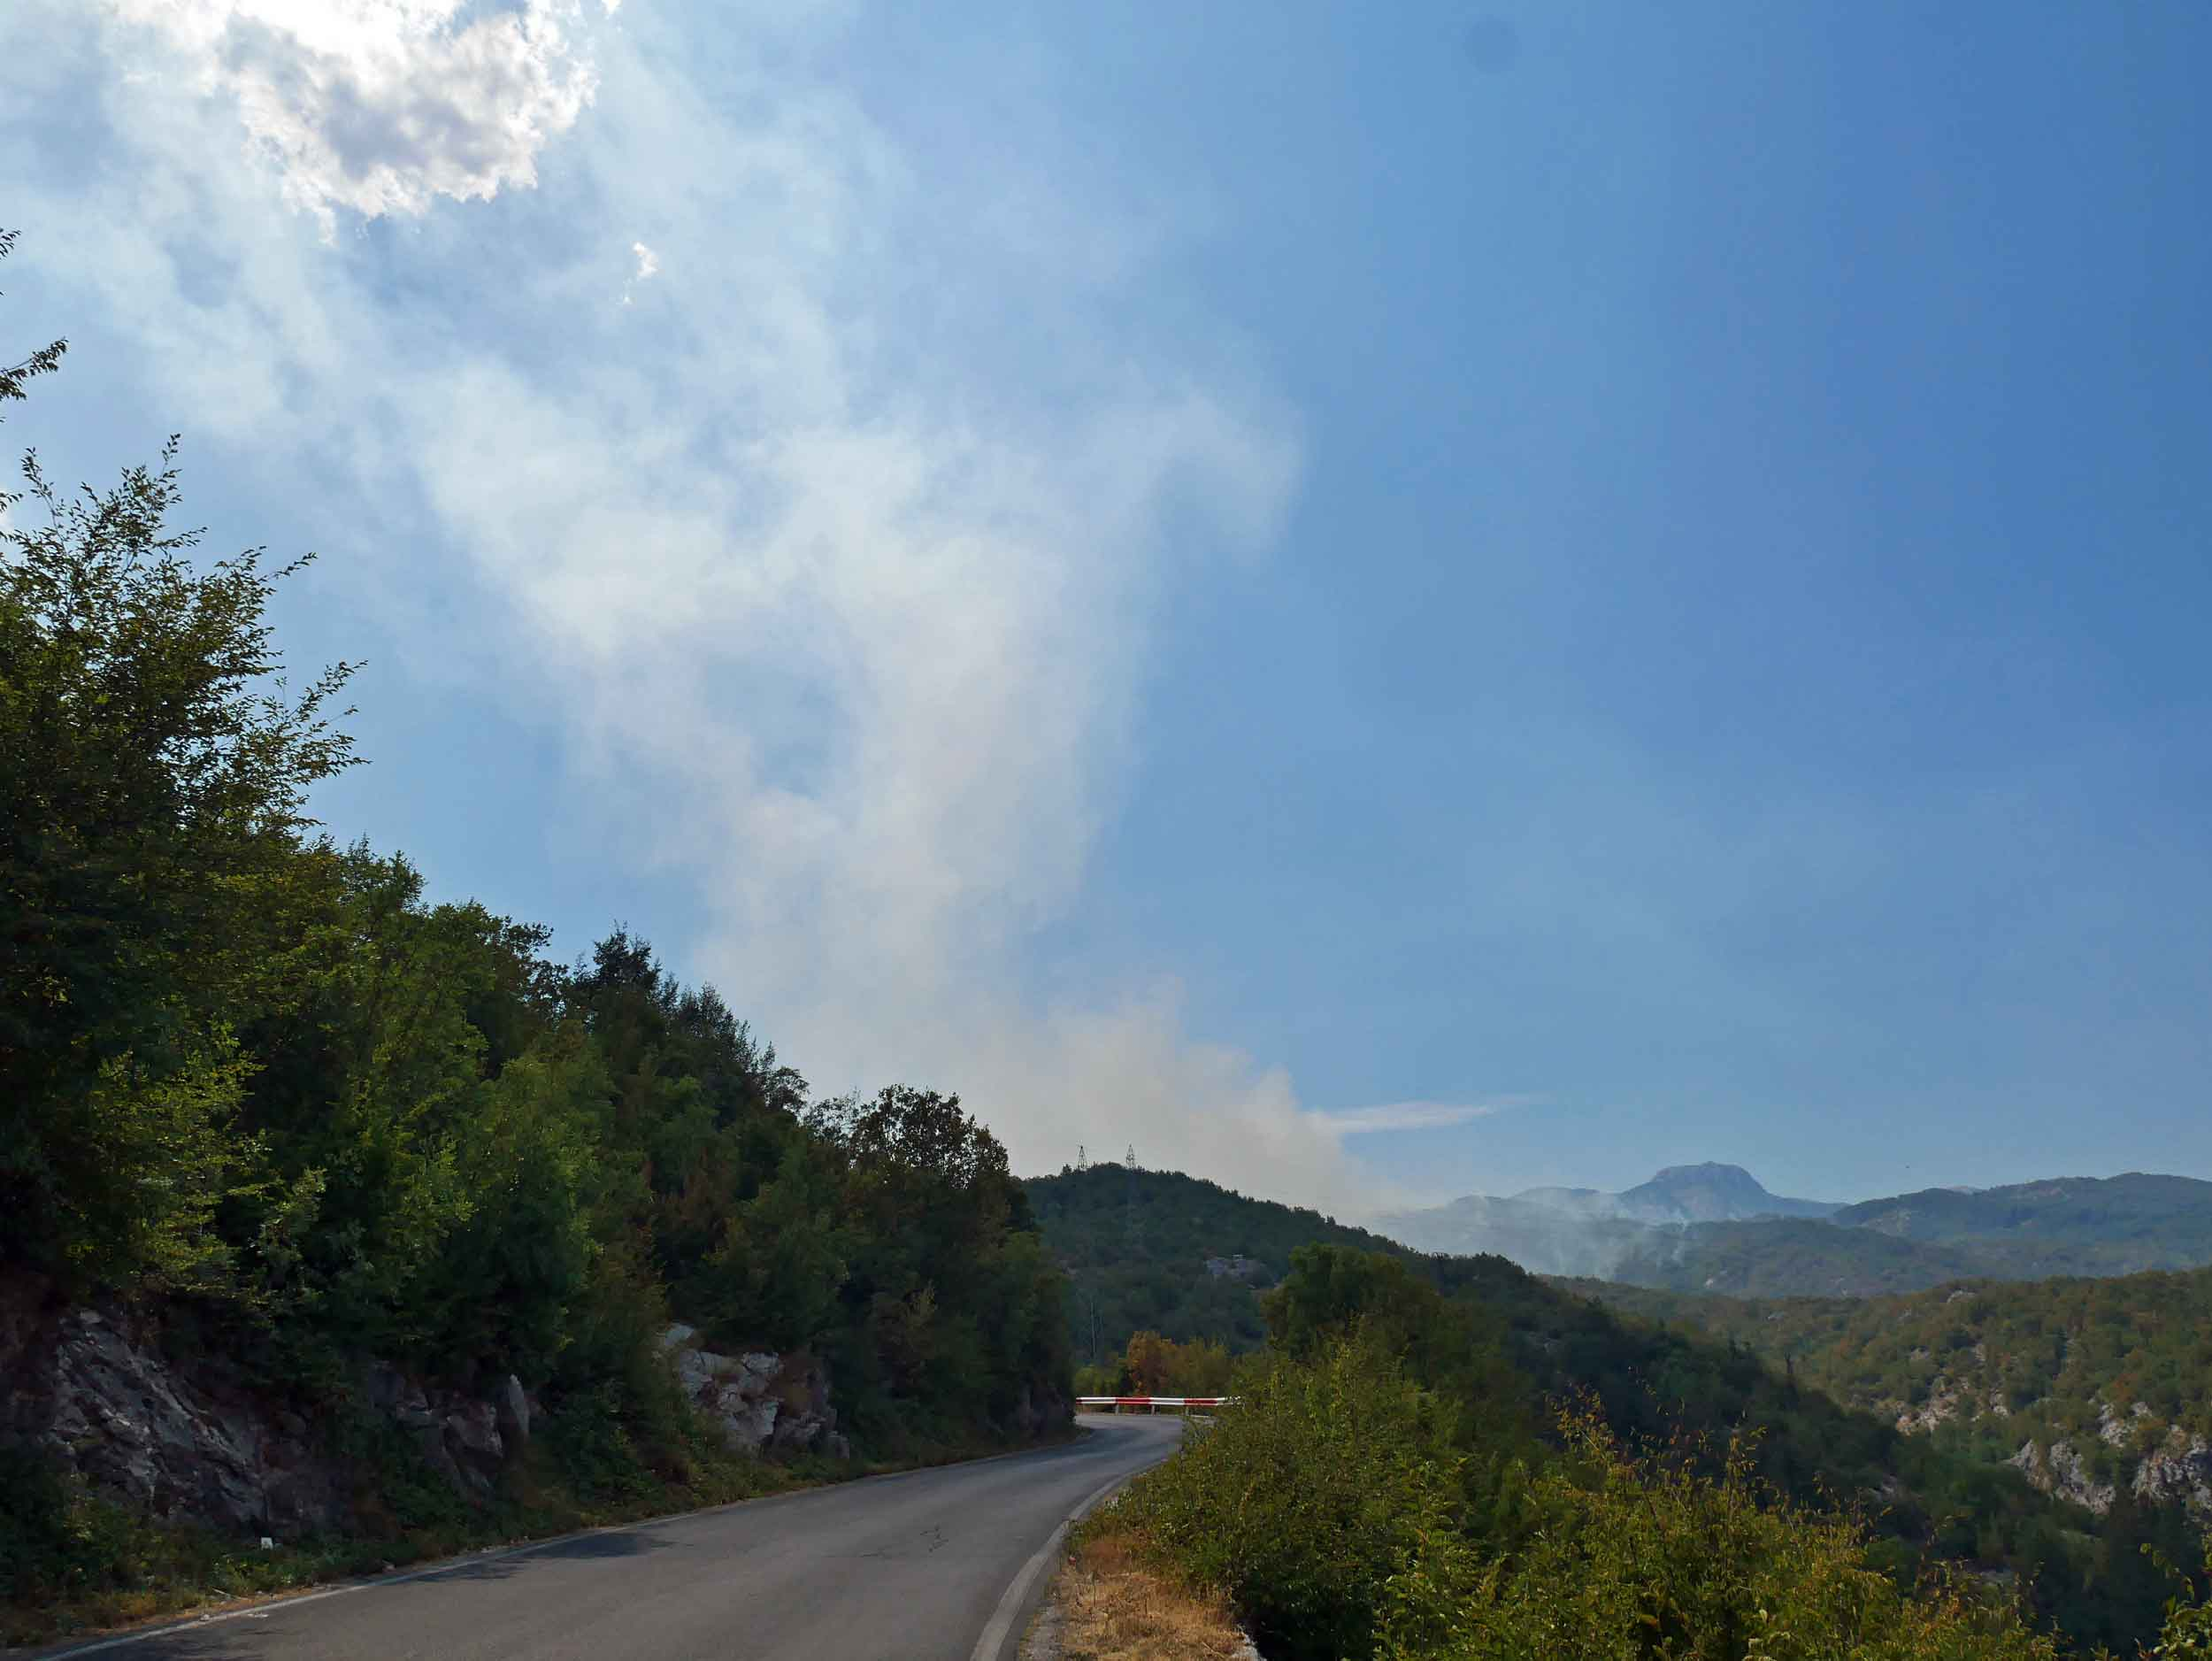 From Montenegro's coast, we drove up into the interior near the former capital of Cetinje, which was surrounded by burning forest and smokey hills because of drought and heat.